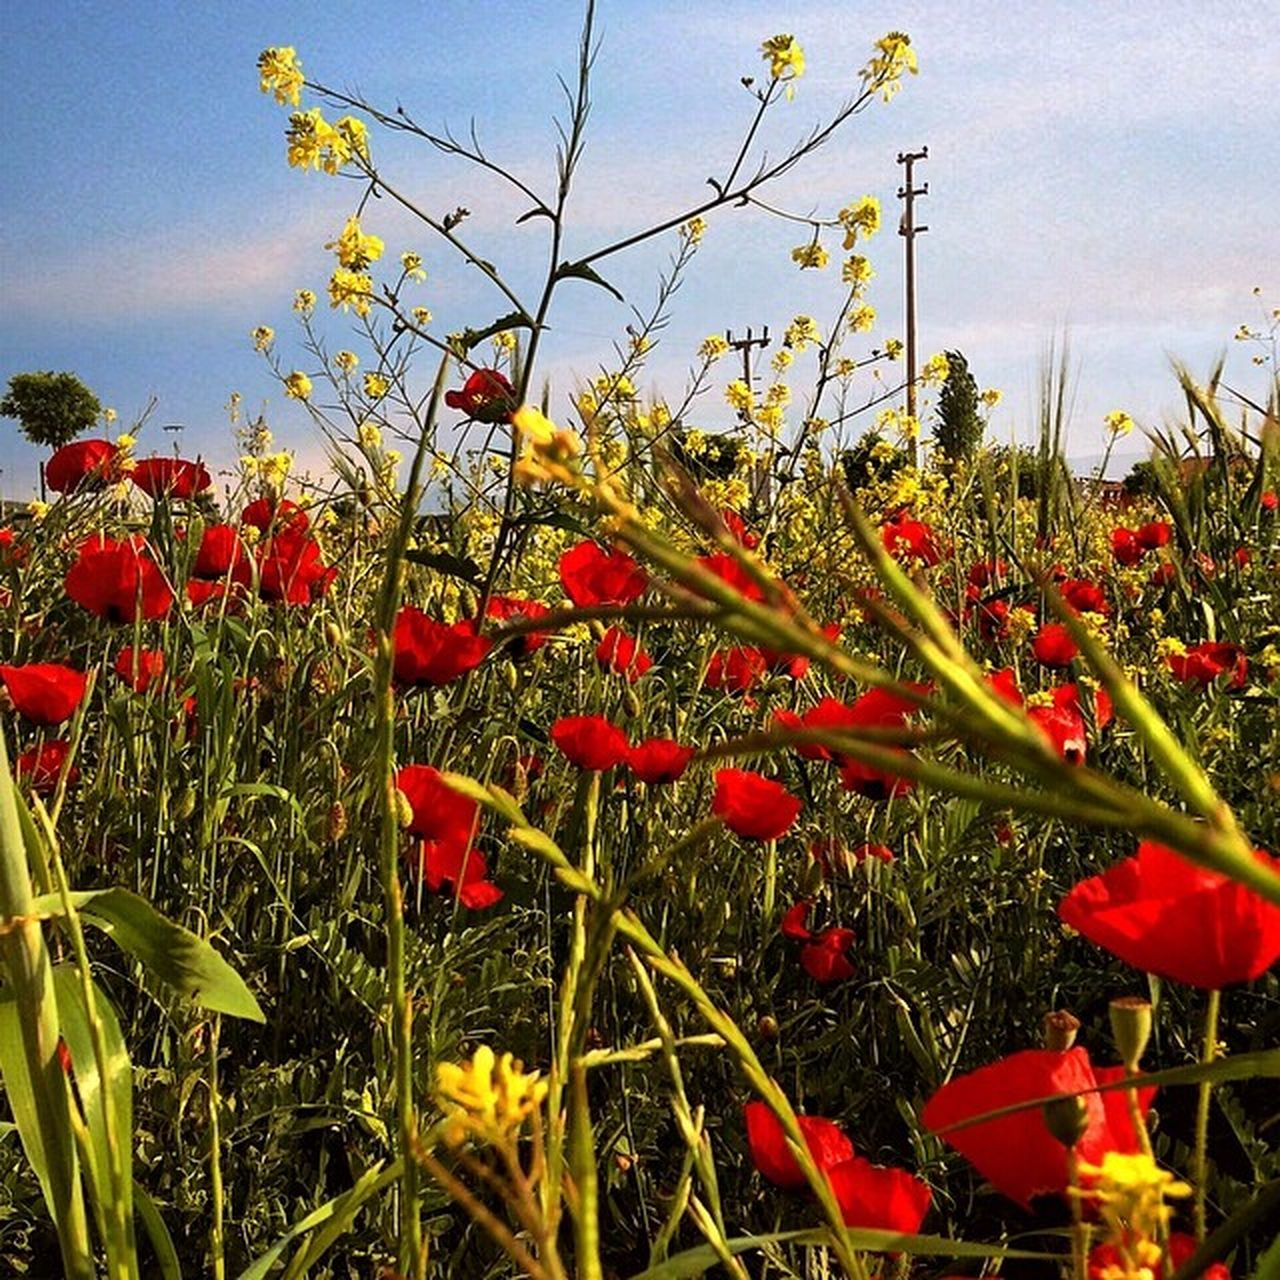 growth, flower, red, poppy, nature, plant, field, beauty in nature, summer, uncultivated, no people, outdoors, blooming, freshness, sky, fragility, day, grass, flower head